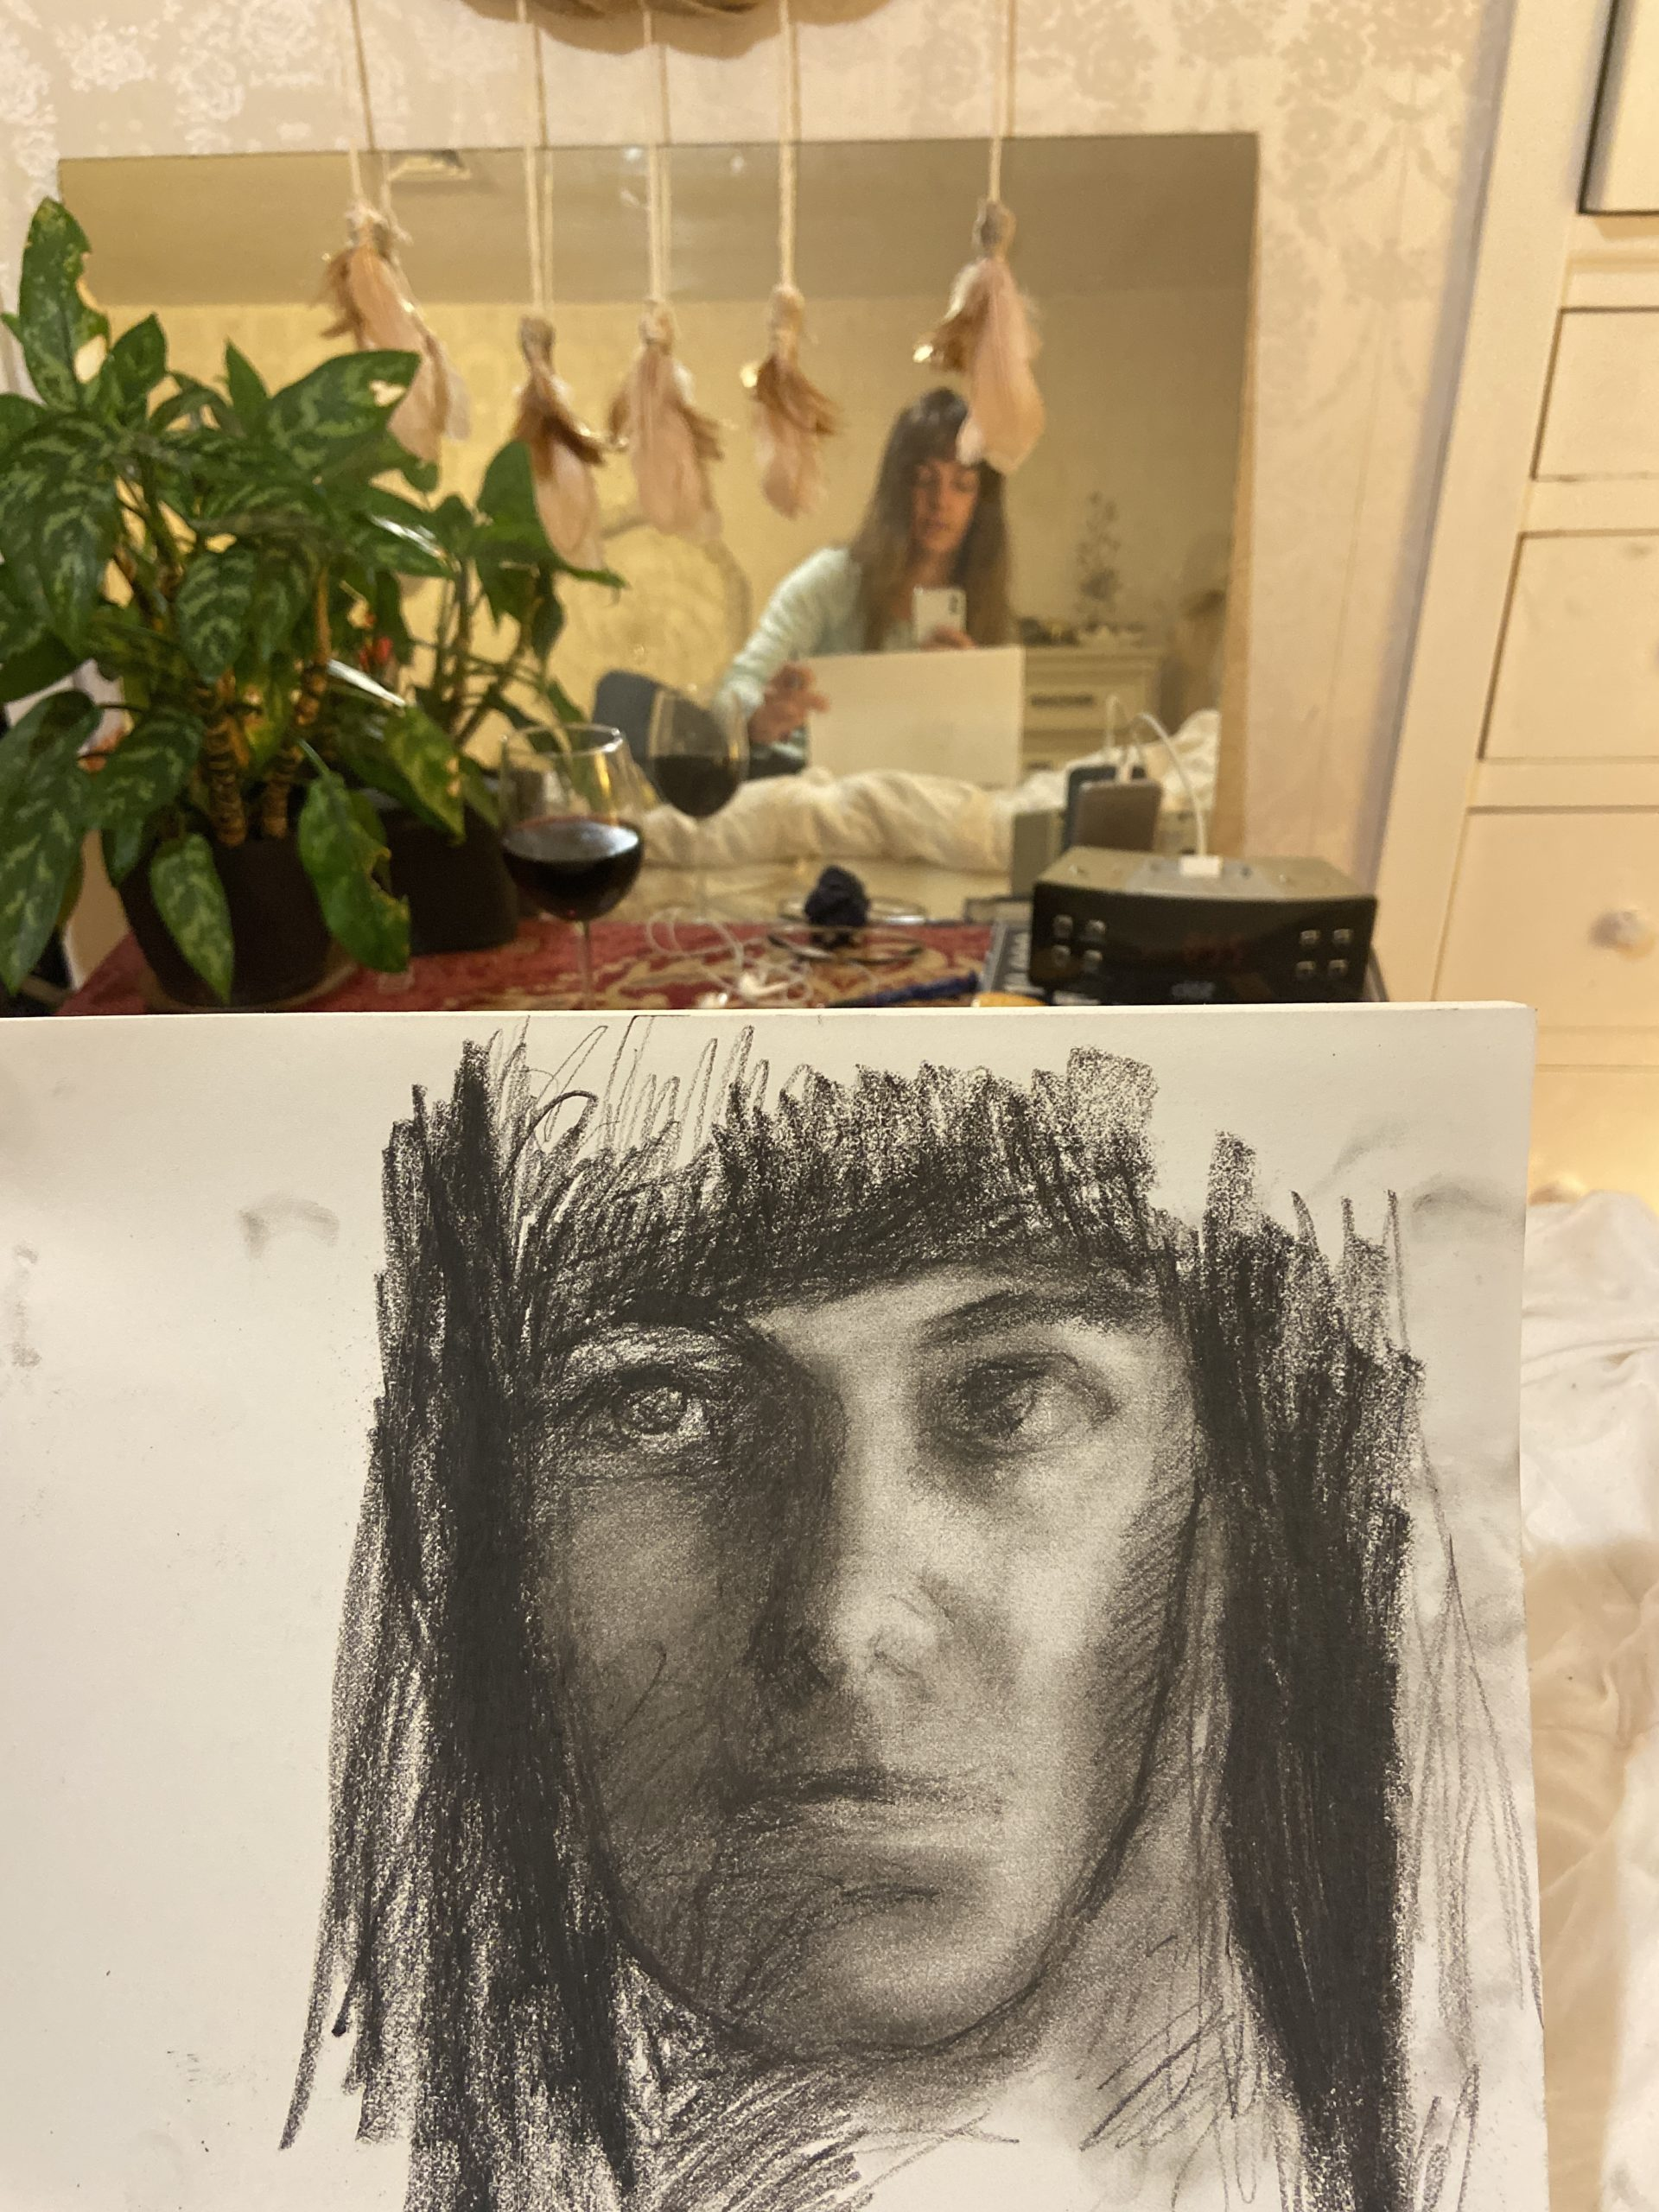 selfie with a self portrait drawing